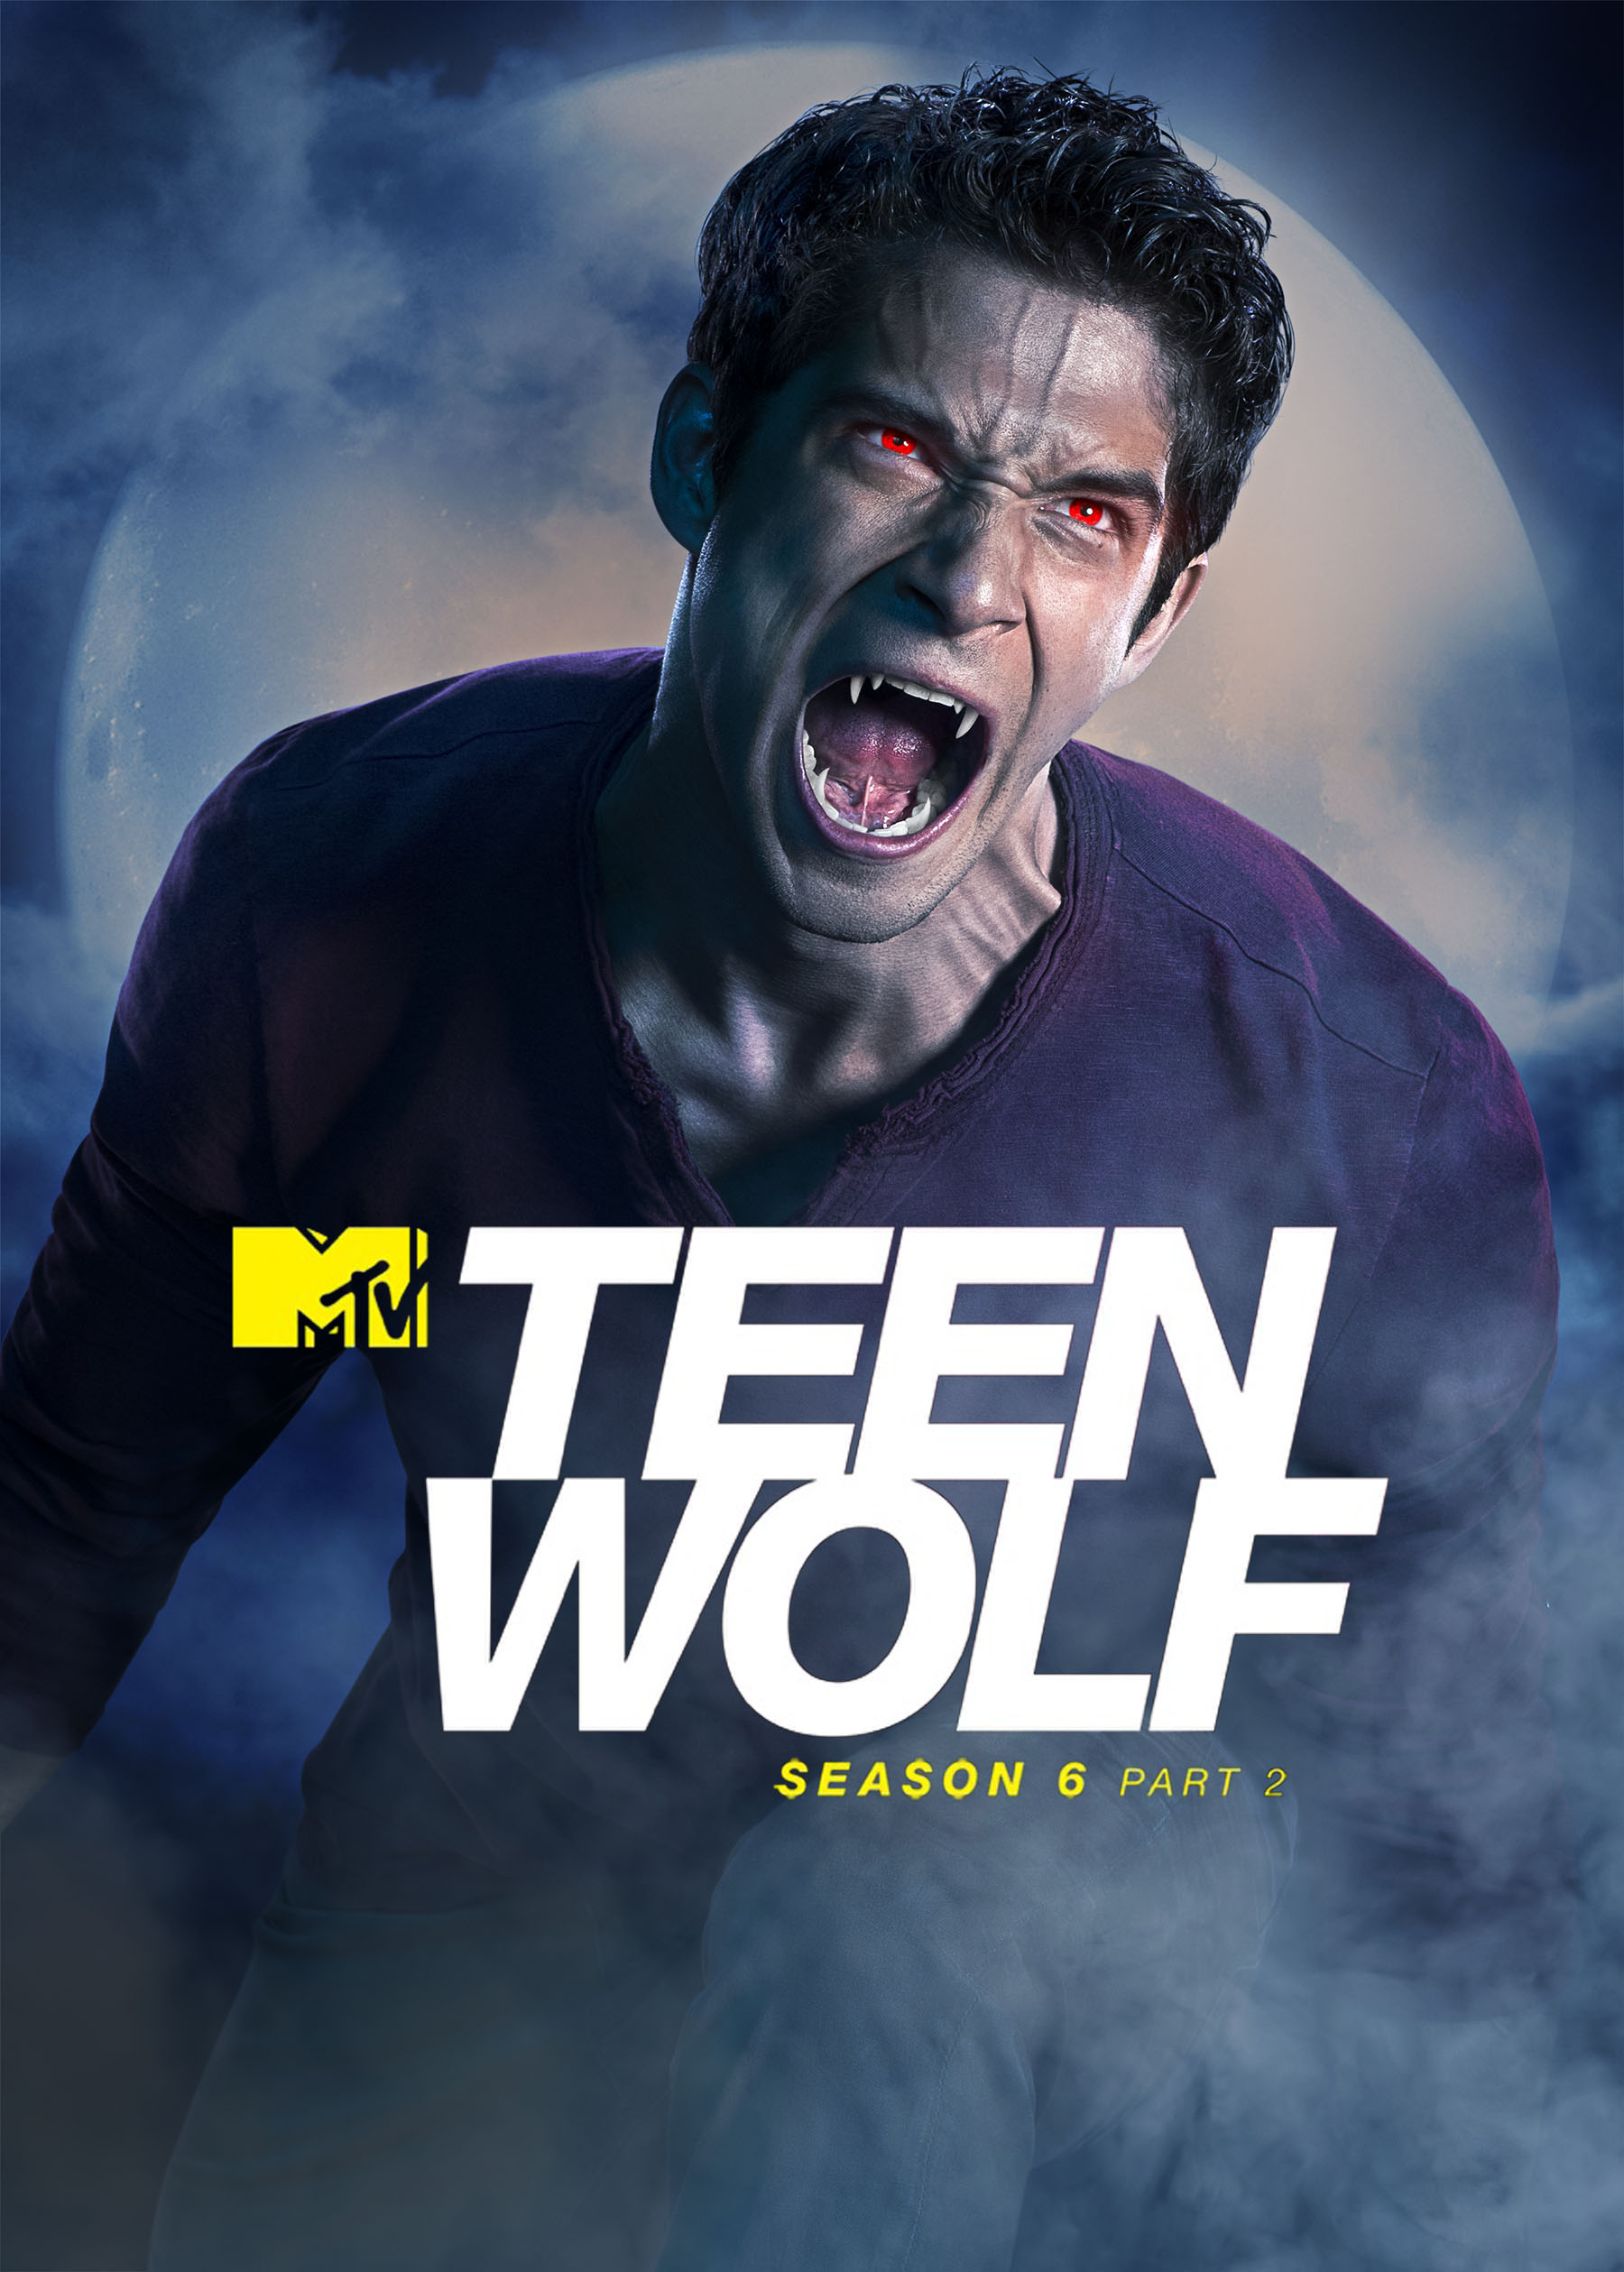 ScottMcCall_1363_rc copy.jpg